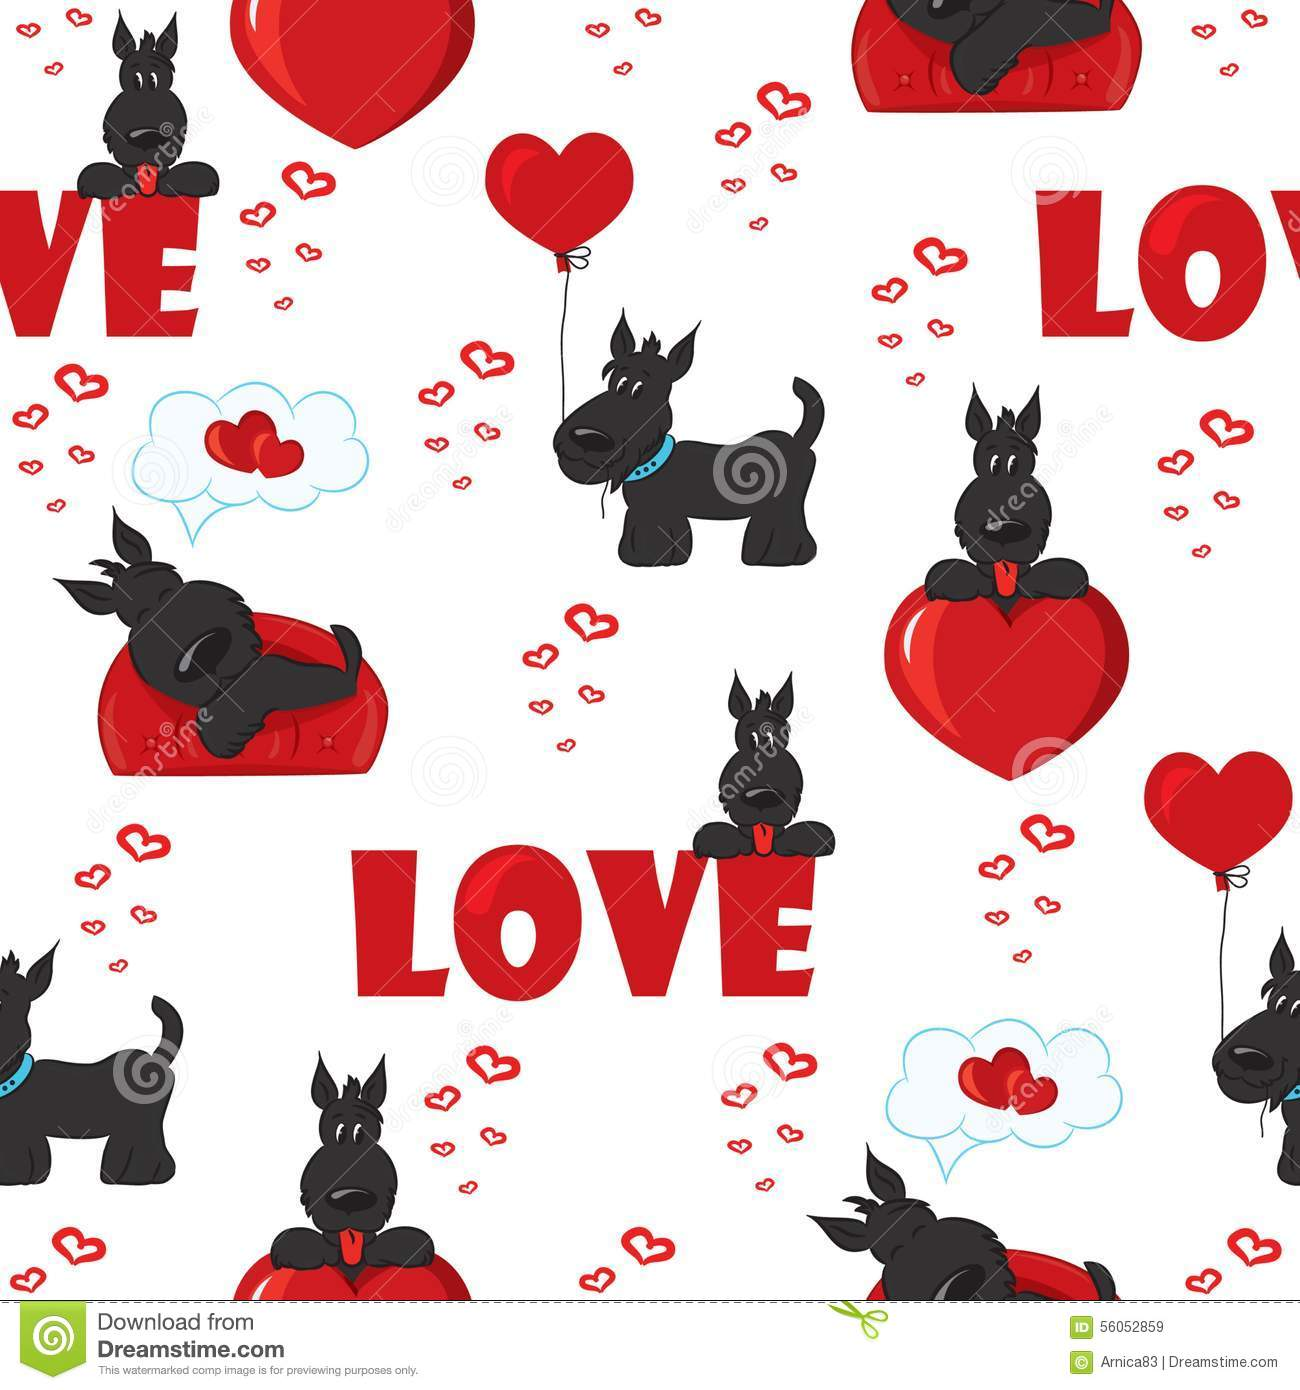 Cute Dog Doodle Wallpaper Cute Background With Dogs And Hearts For Valentine S Day